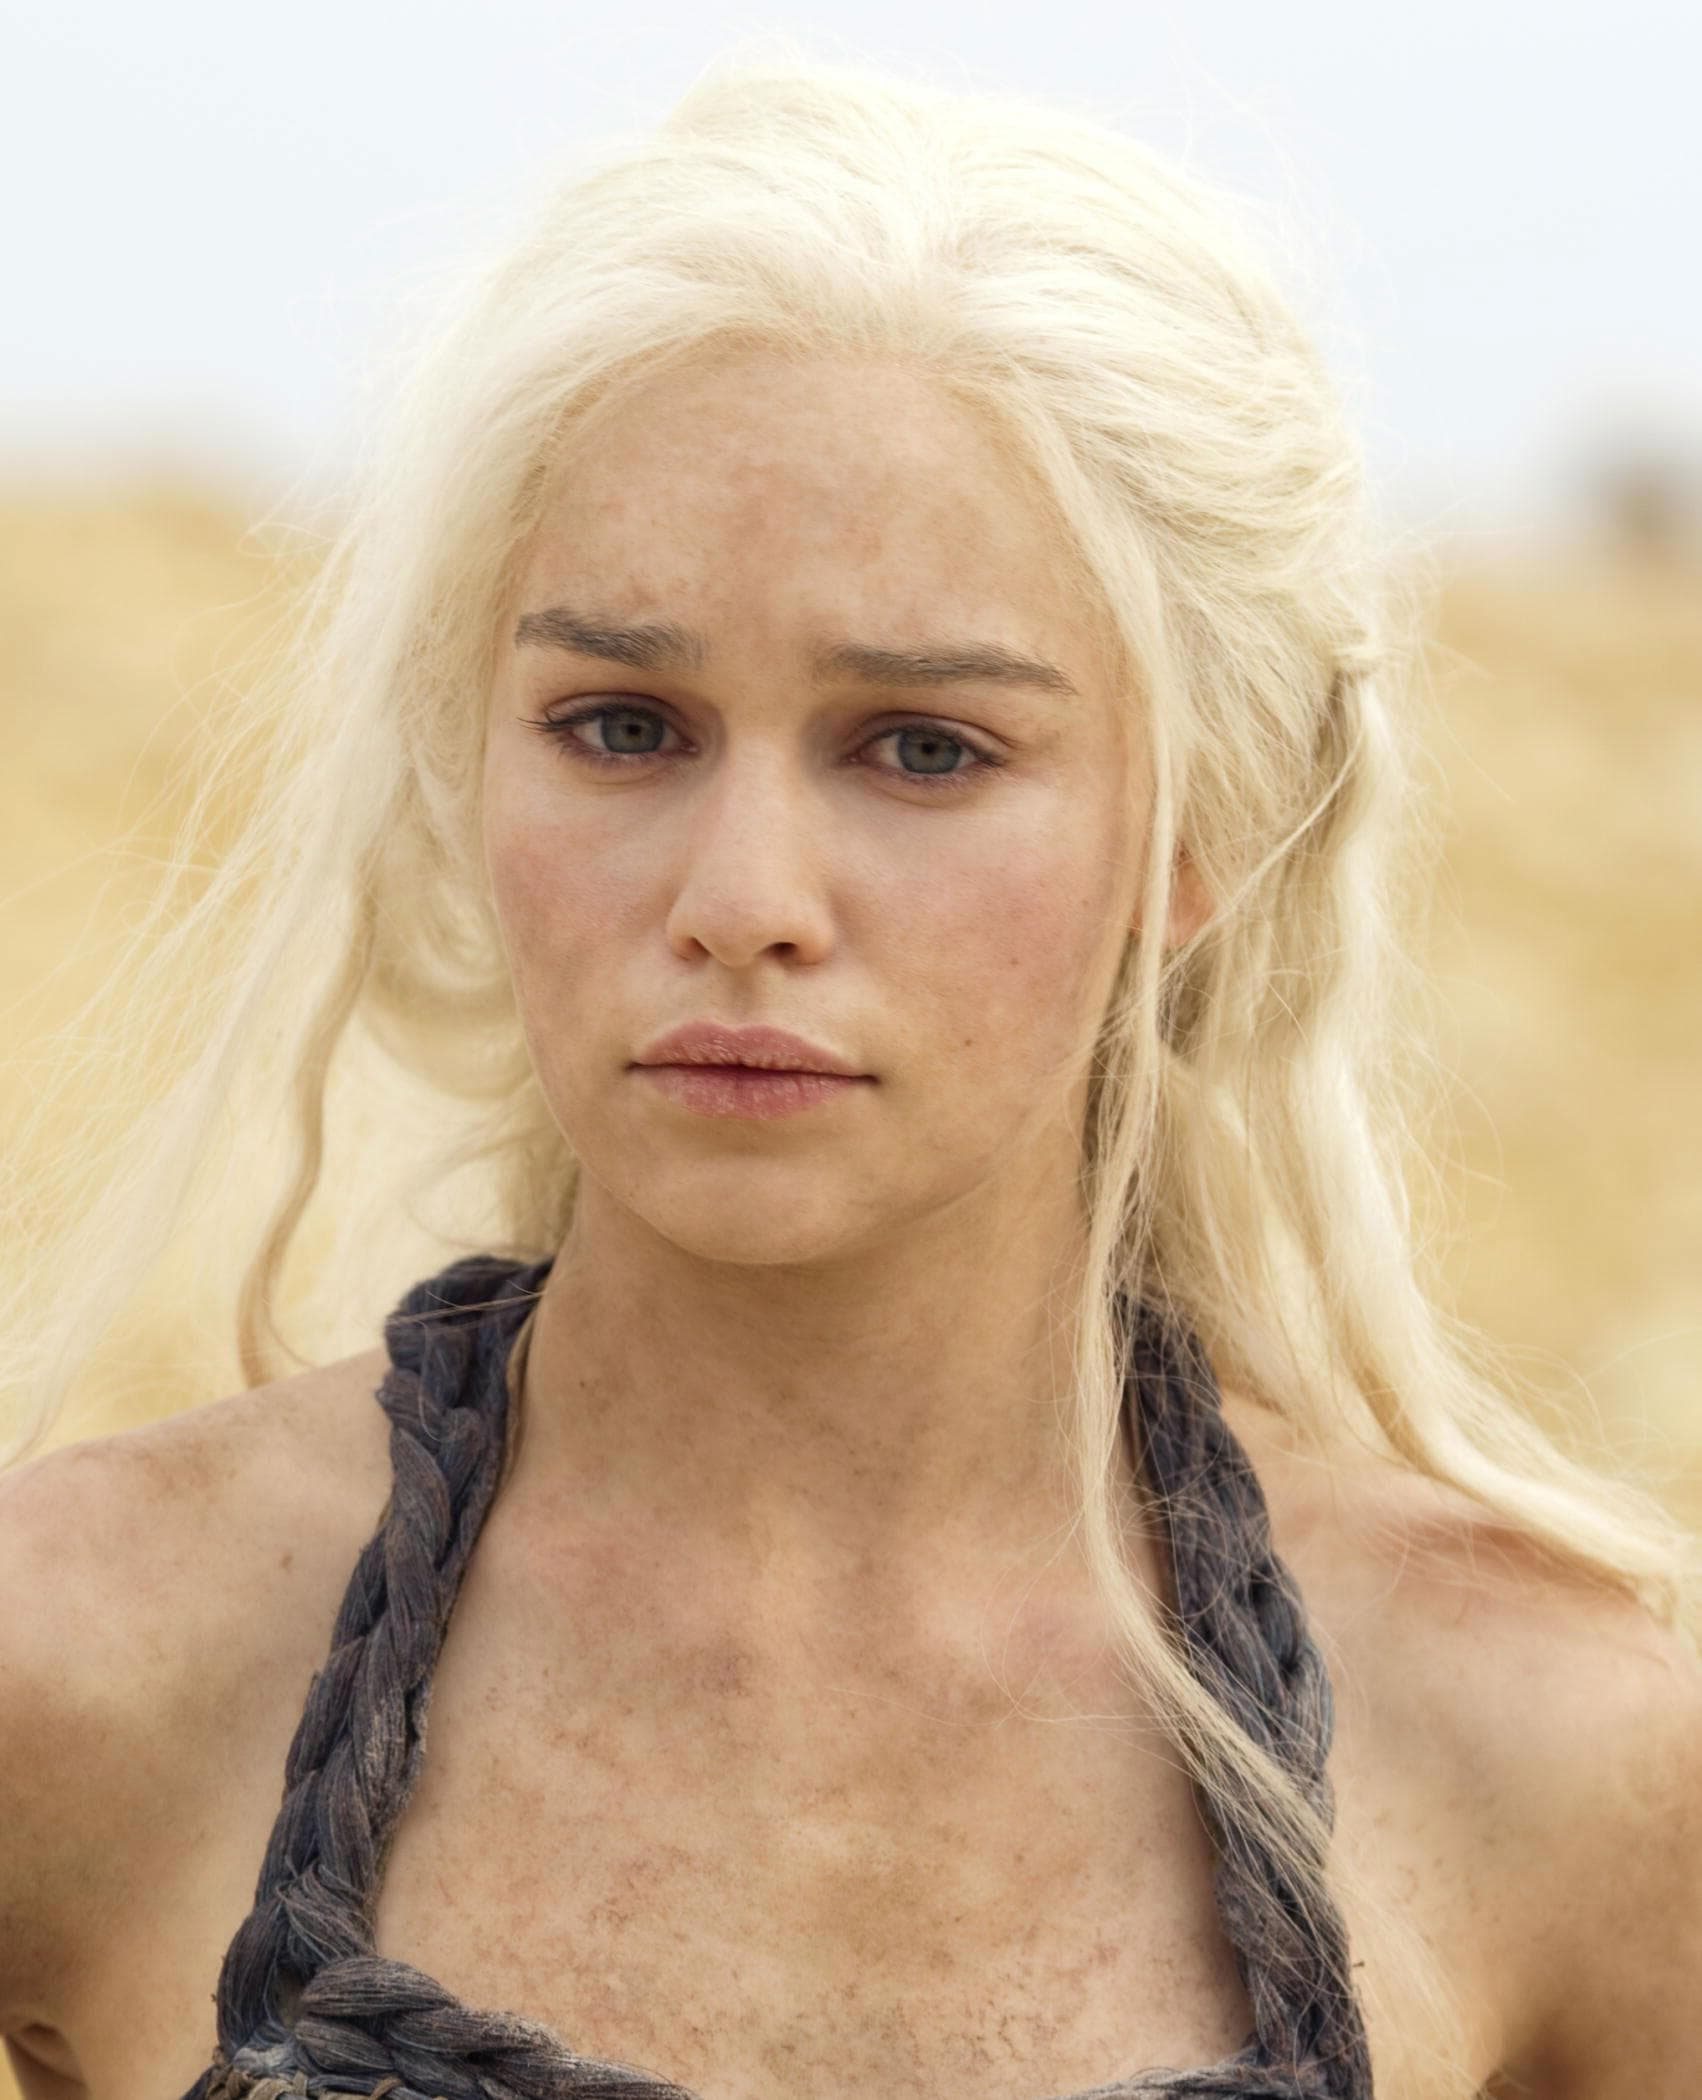 Random Hottest Female Game of Thrones Characters